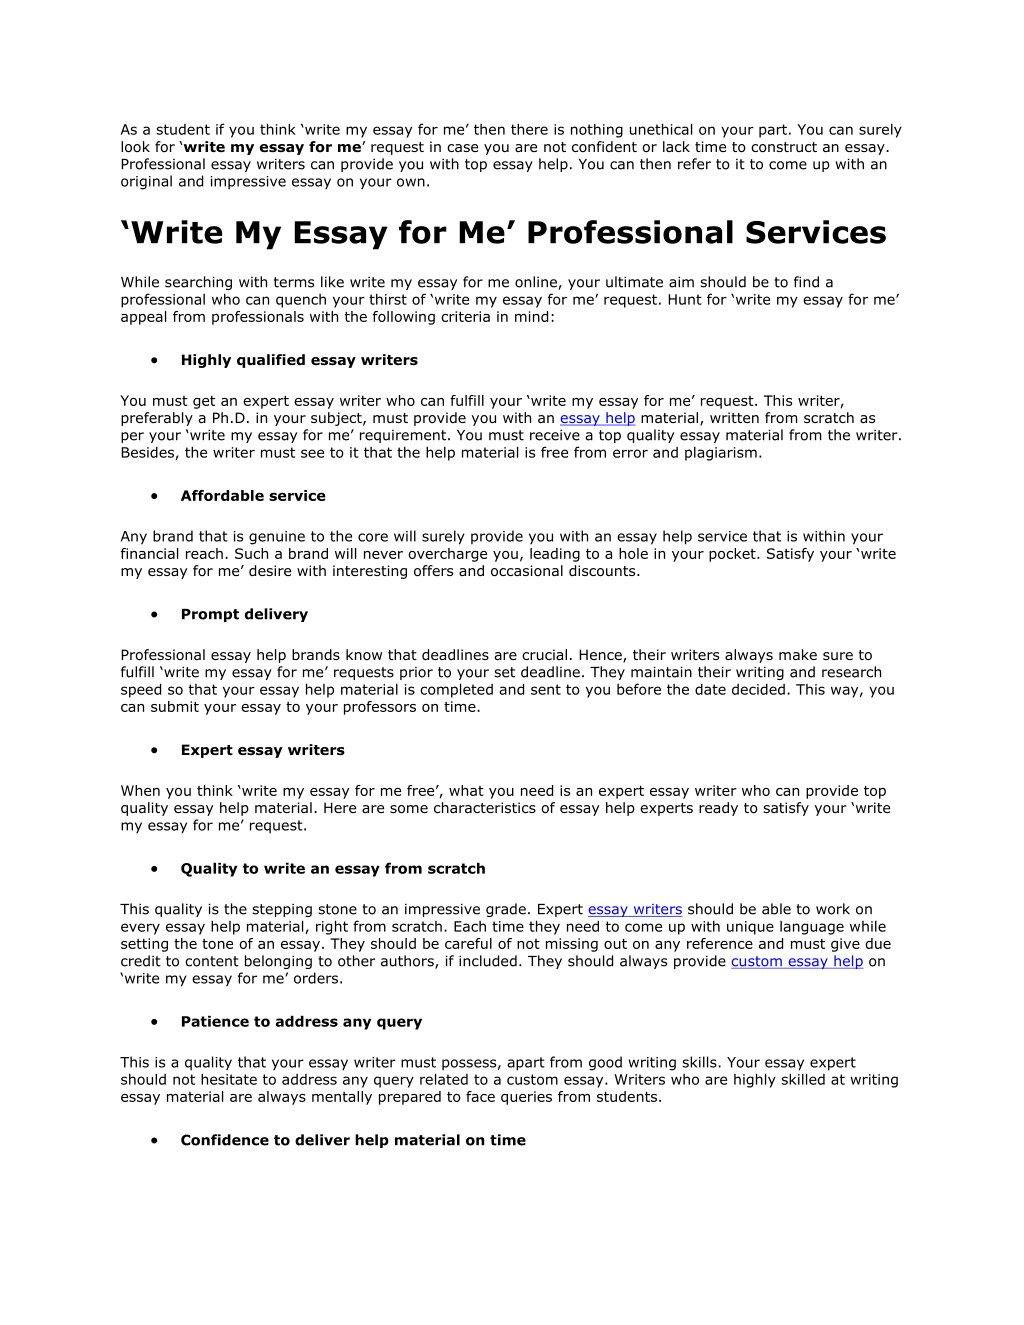 006 Essay Example Write For Me As Student If You Think My Amazing Custom Cheap Online Free Full